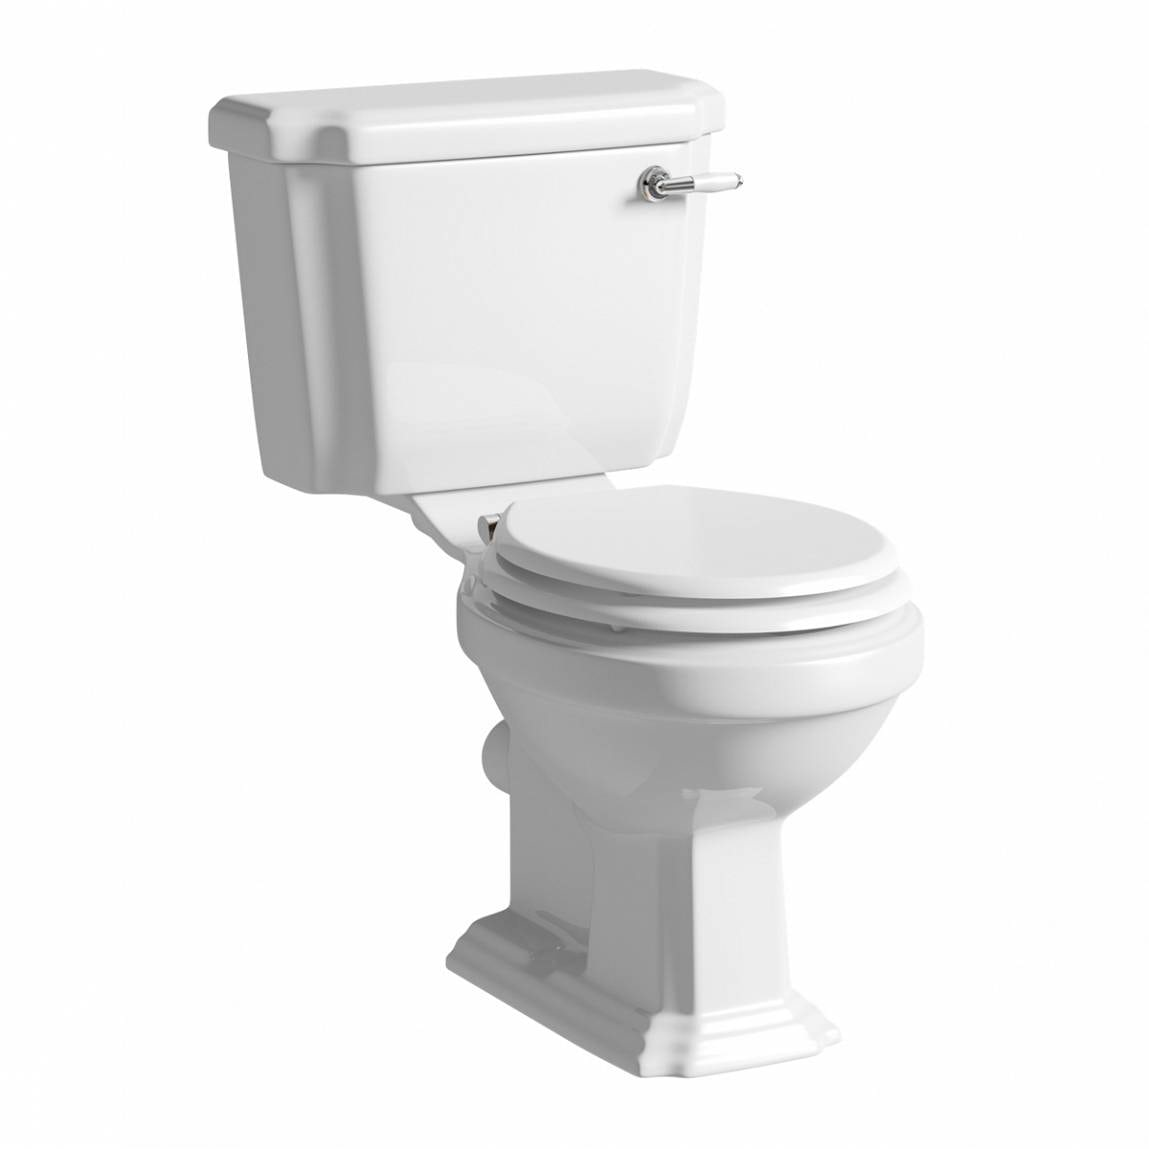 The Bath Co. Dulwich close coupled toilet with soft close wooden toilet seat white